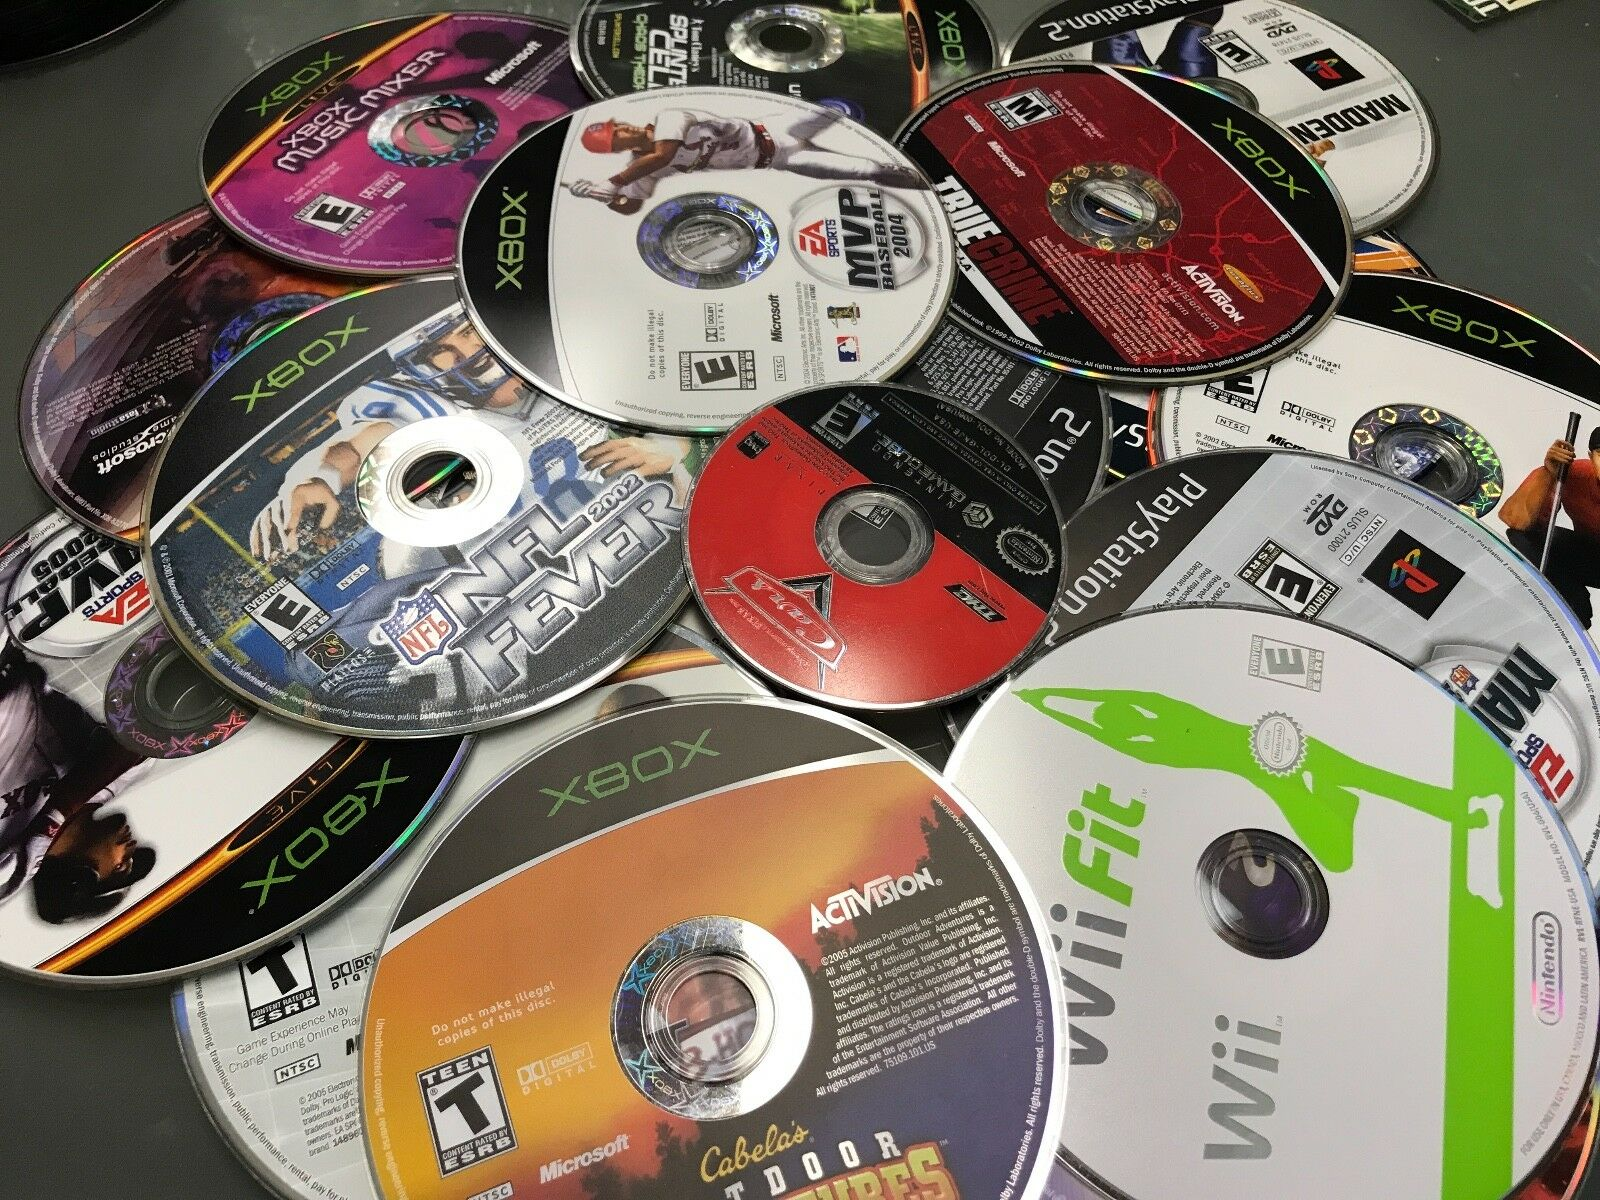 500 + DVD CD VIDEO GAME Lot BULK Wholesale! 500 Lot! Great Buy! BUY 3 Get 1 FREE